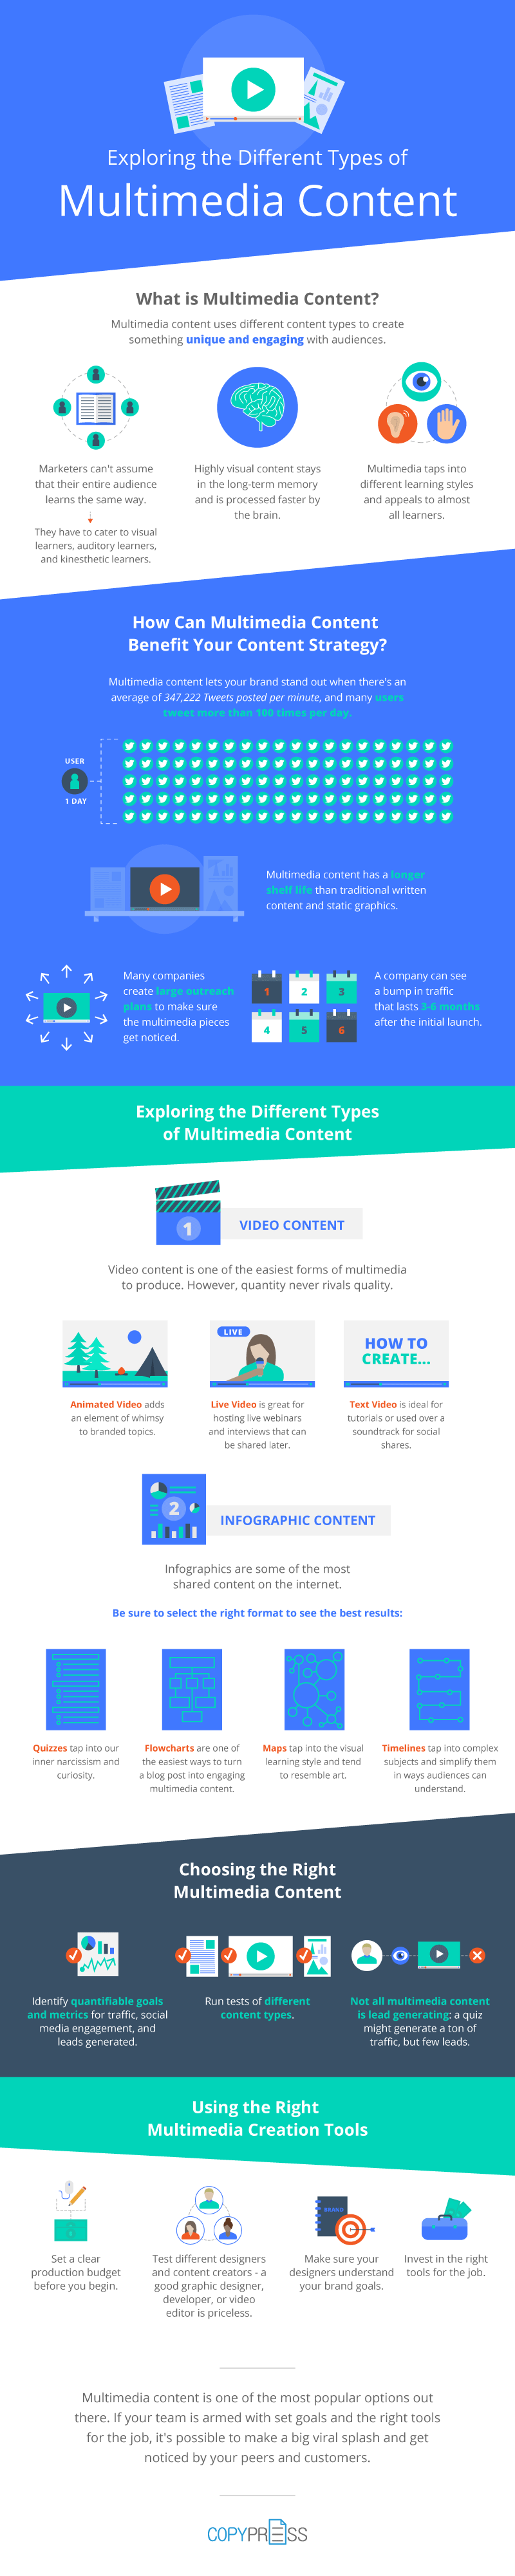 Multimedia content can breathe new life into your content marketing. It communicates in an instant, keeps readers engaged longer, and is highly shareable! Click to blog to learn more.